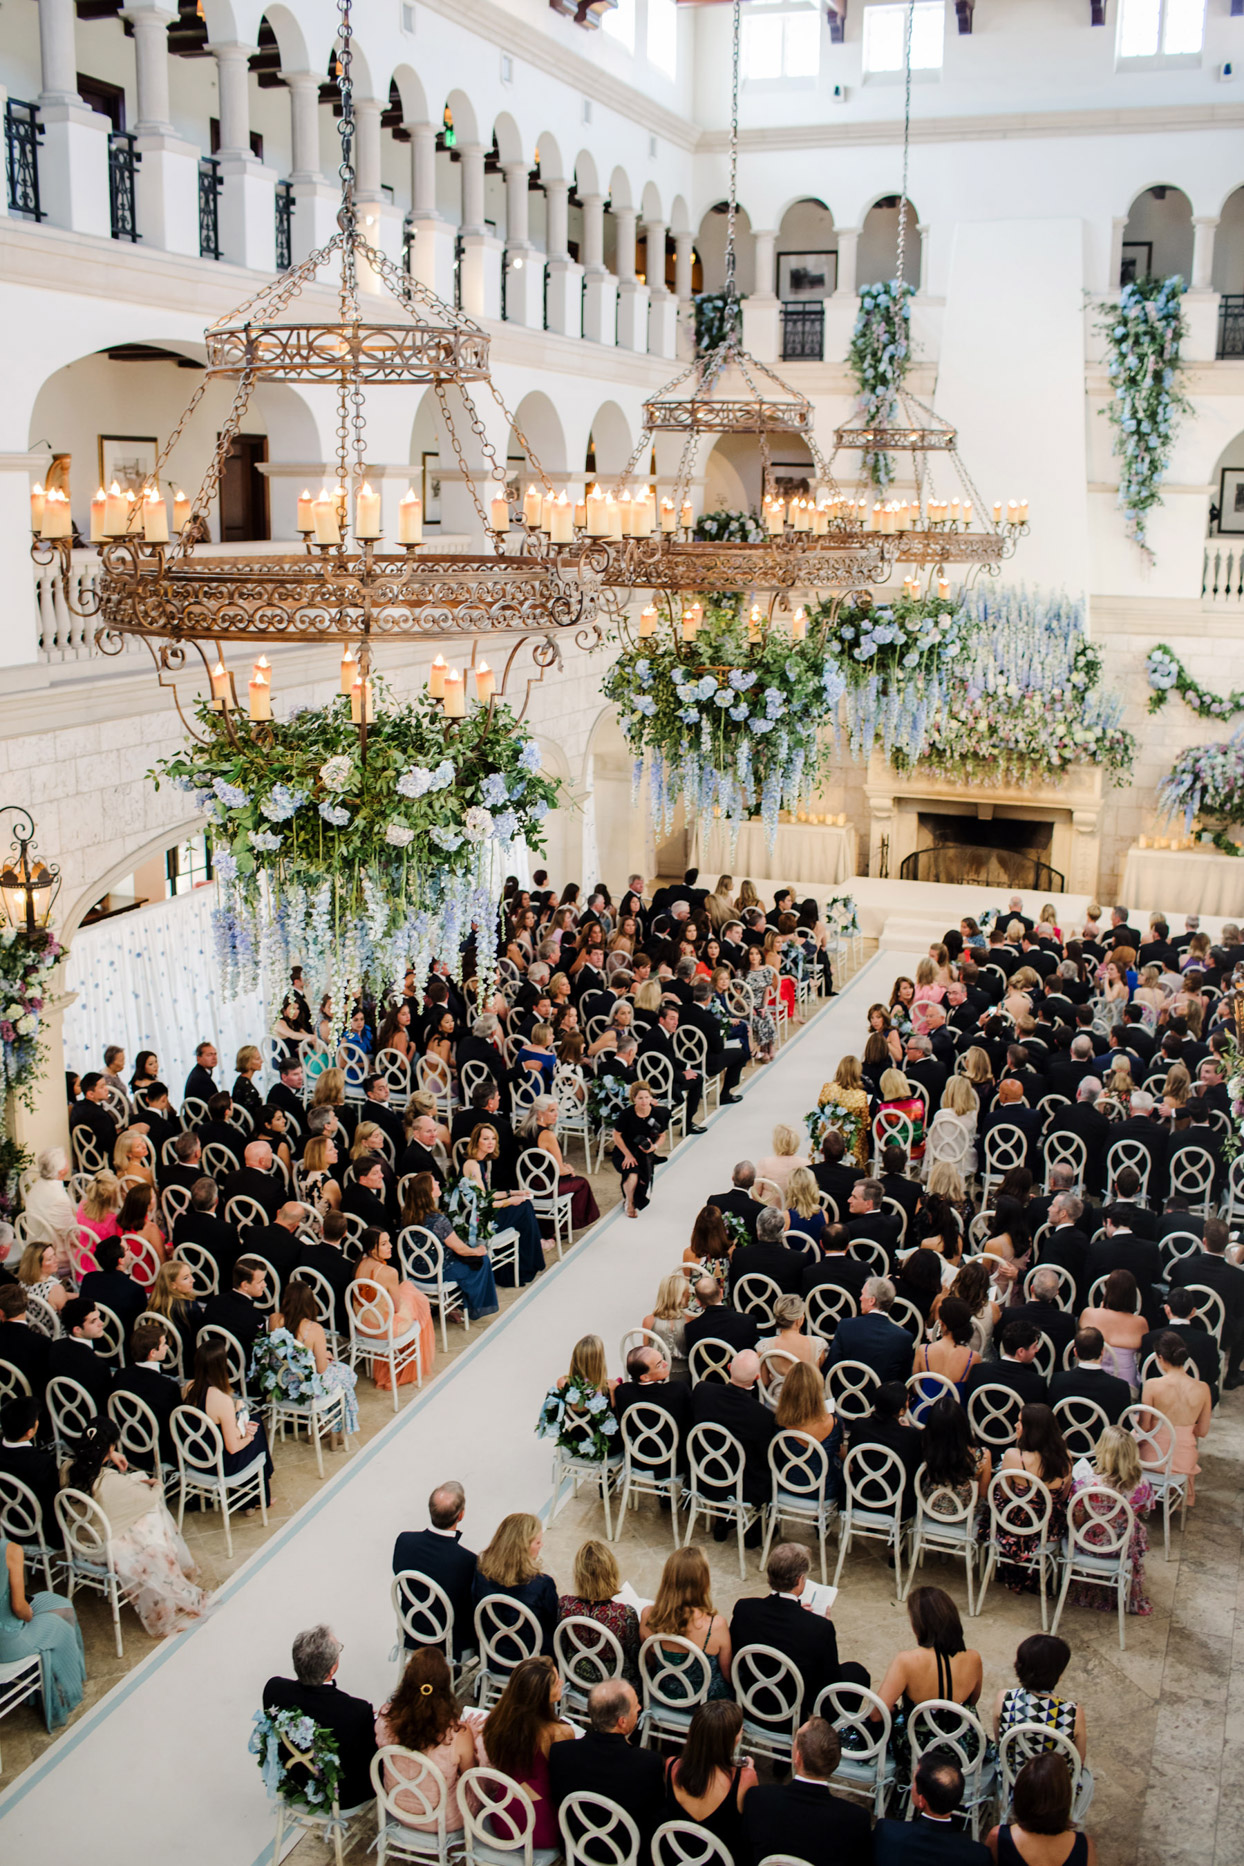 guests sitting in white chairs for indoor wedding ceremony with flowers hanging from chandeliers